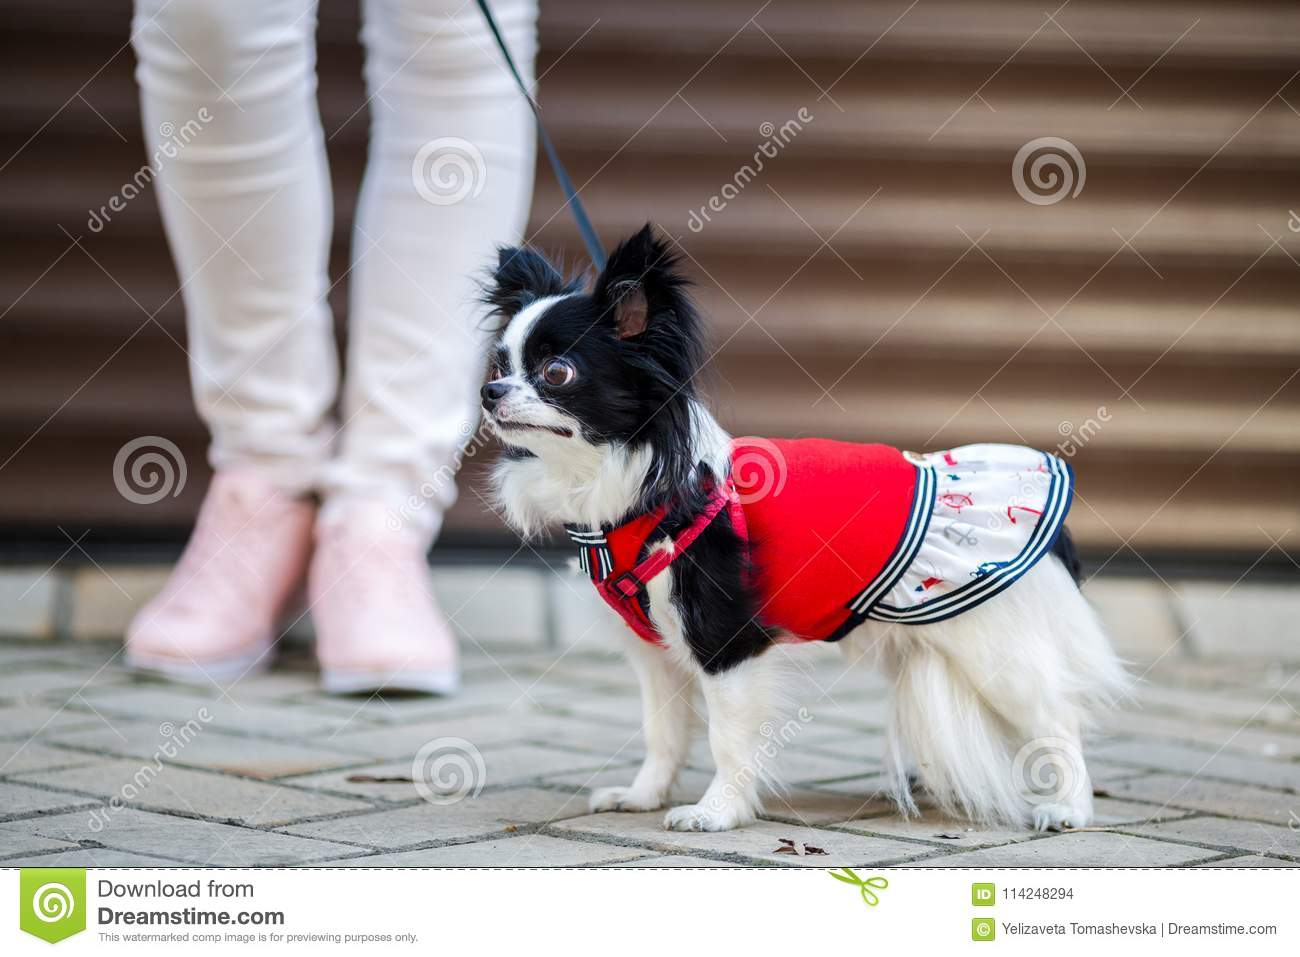 A black fluffy white, longhaired funny dog female sex with larger eyes, Chihuahua breed, dressed in red dress. animal stands at fu